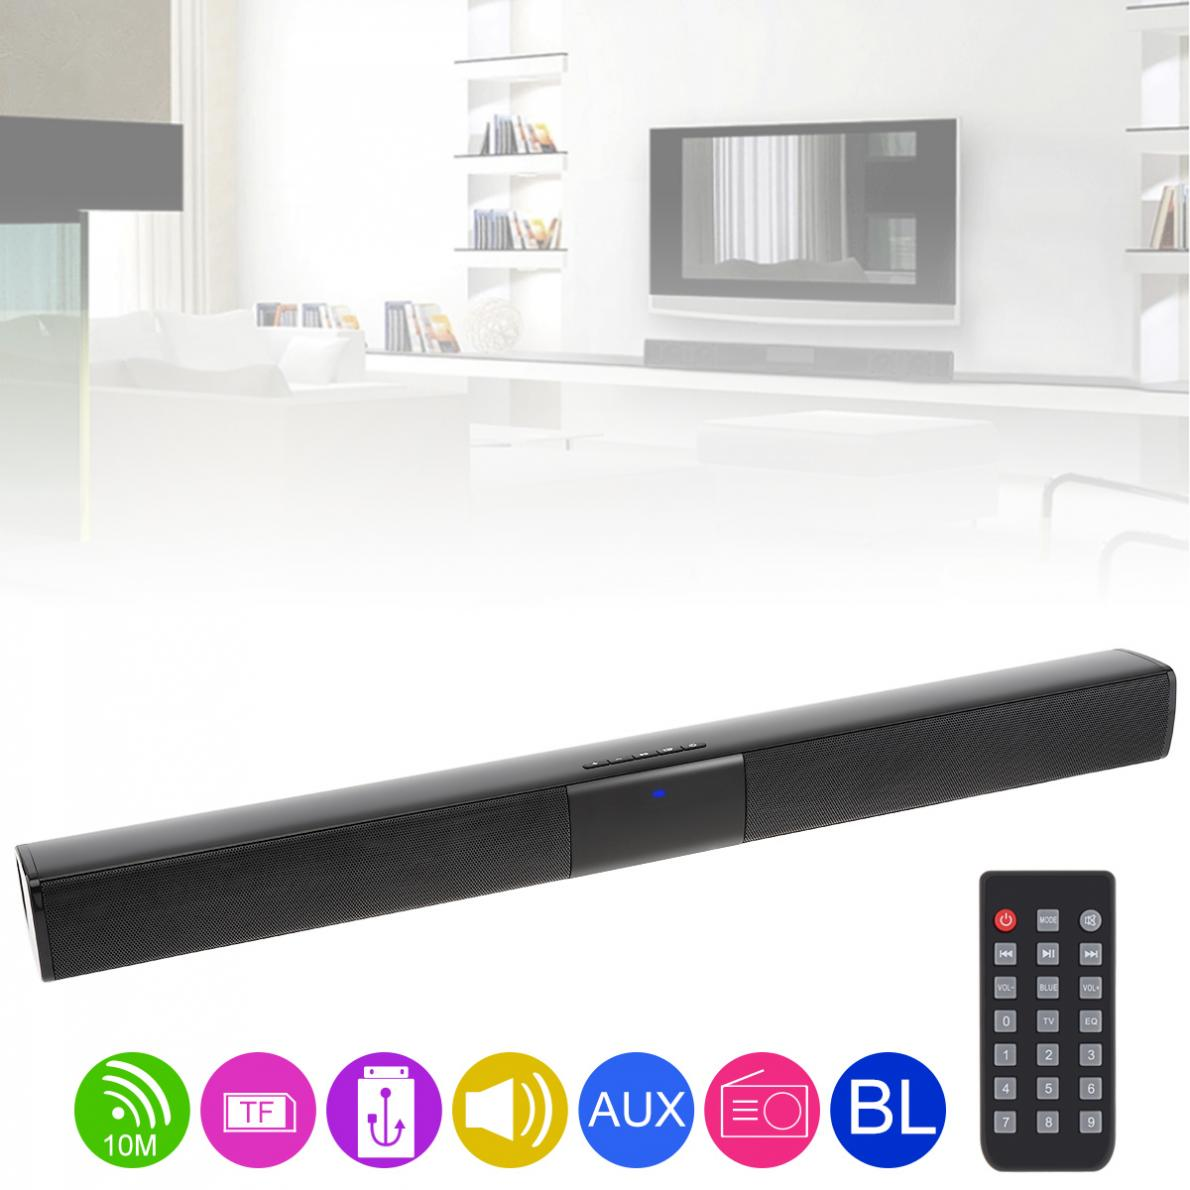 Home Theater Sensurround Multi function Bluetooth Soundbar Speaker with 4 Full Range Horns / 3.5mm AUX / RCA Interface for TV PC